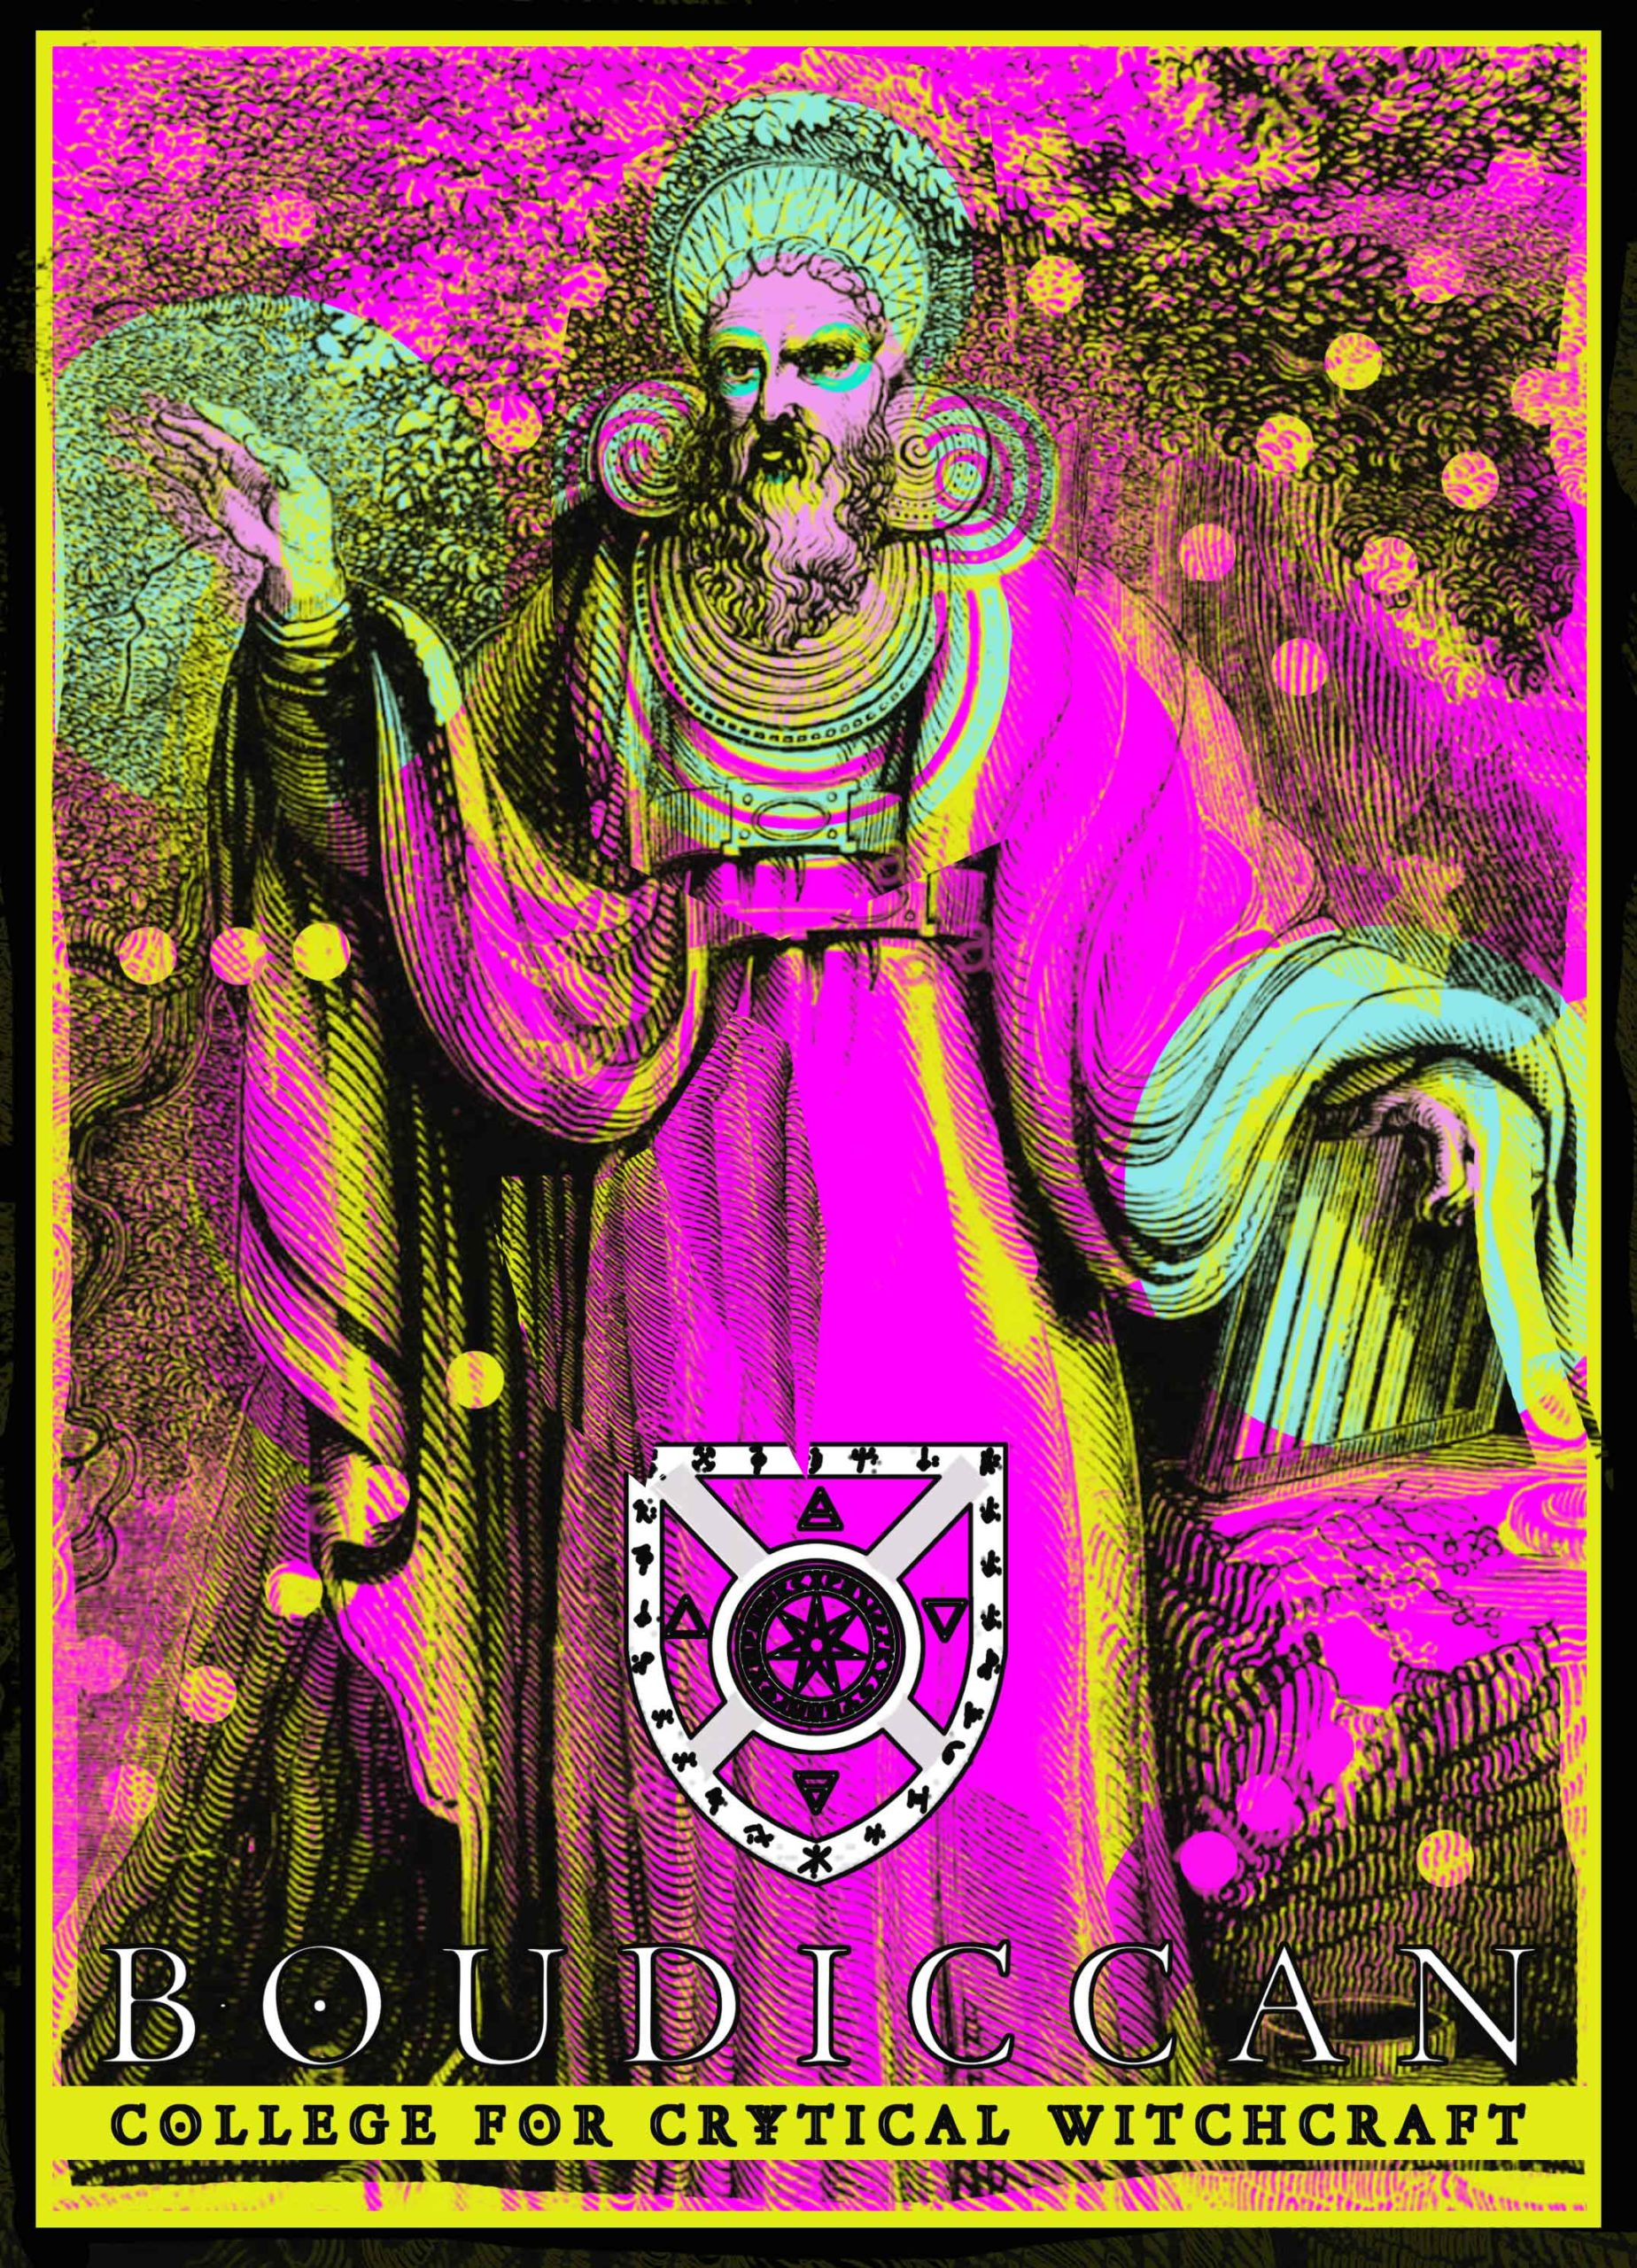 Illustration of a figure in robes with neon colours screen printed on top. Hot pink, green and yellow adorn the robes. At the bottom is the text Boudiccan COllege of Crytical Witchcraft